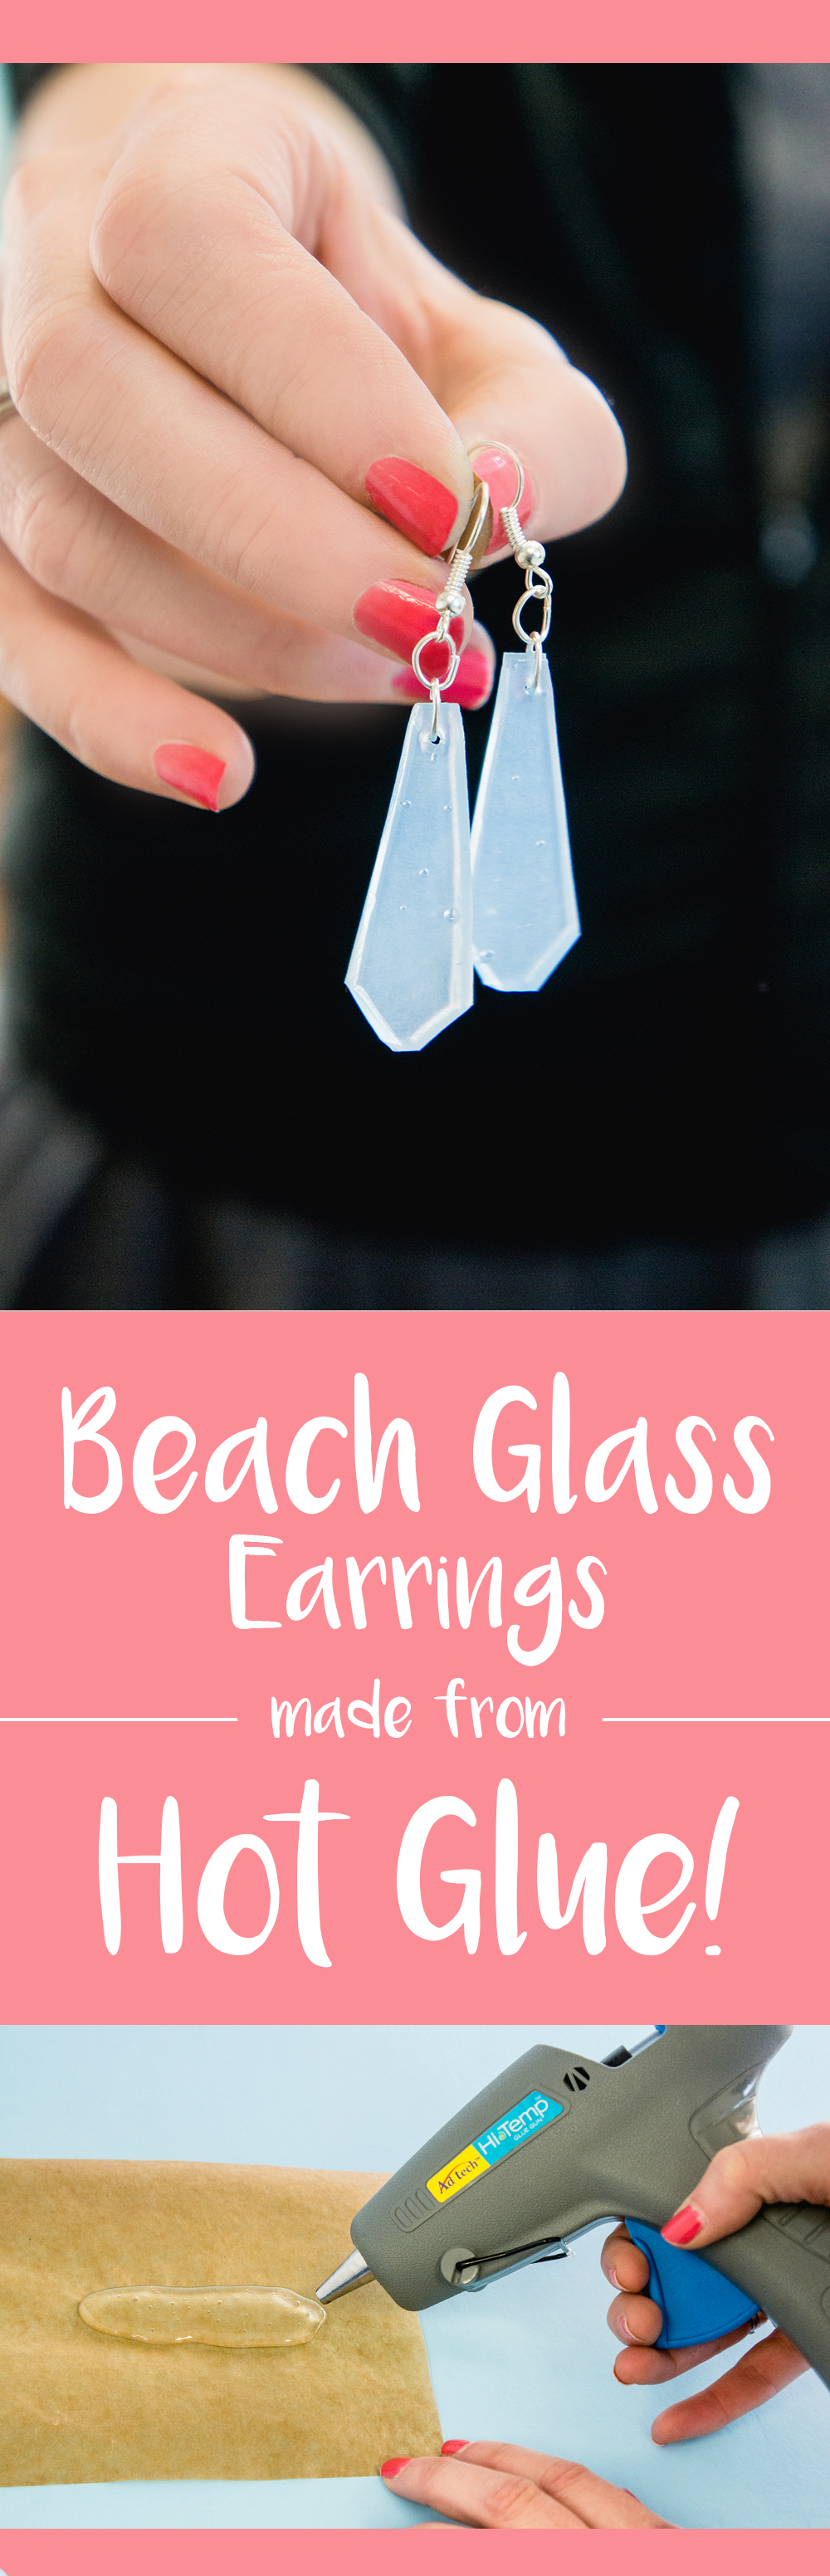 Beach Glass Earrings made with AdTech® Hot Glue - DIY Hot Glue Sea Glass Jewelry